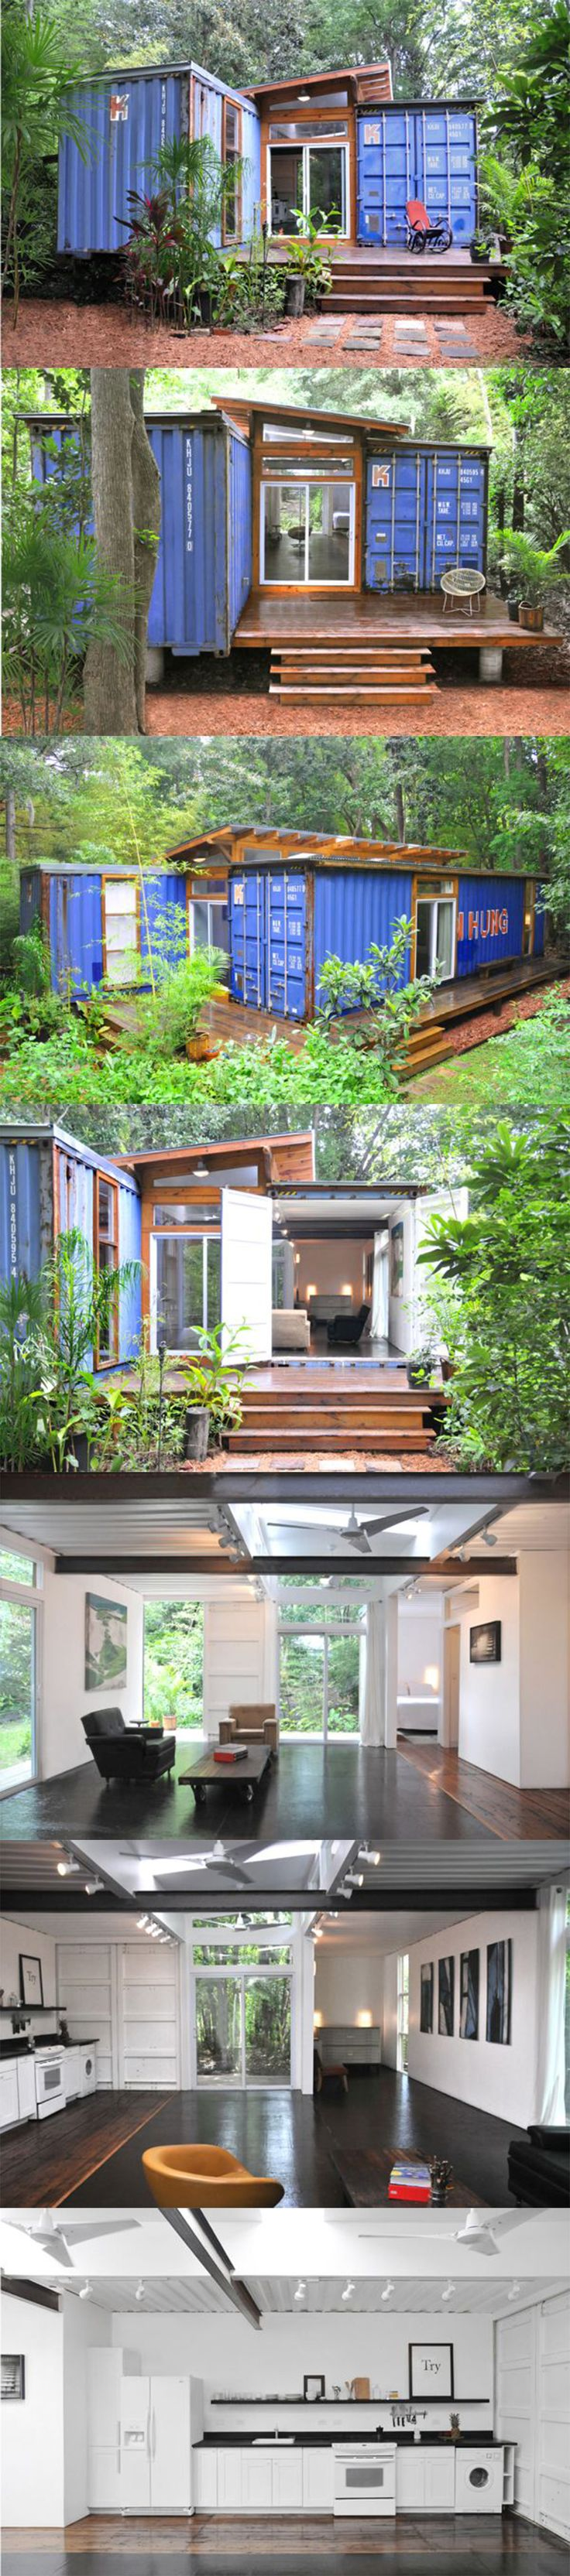 shipping container home - Container Home Design Ideas